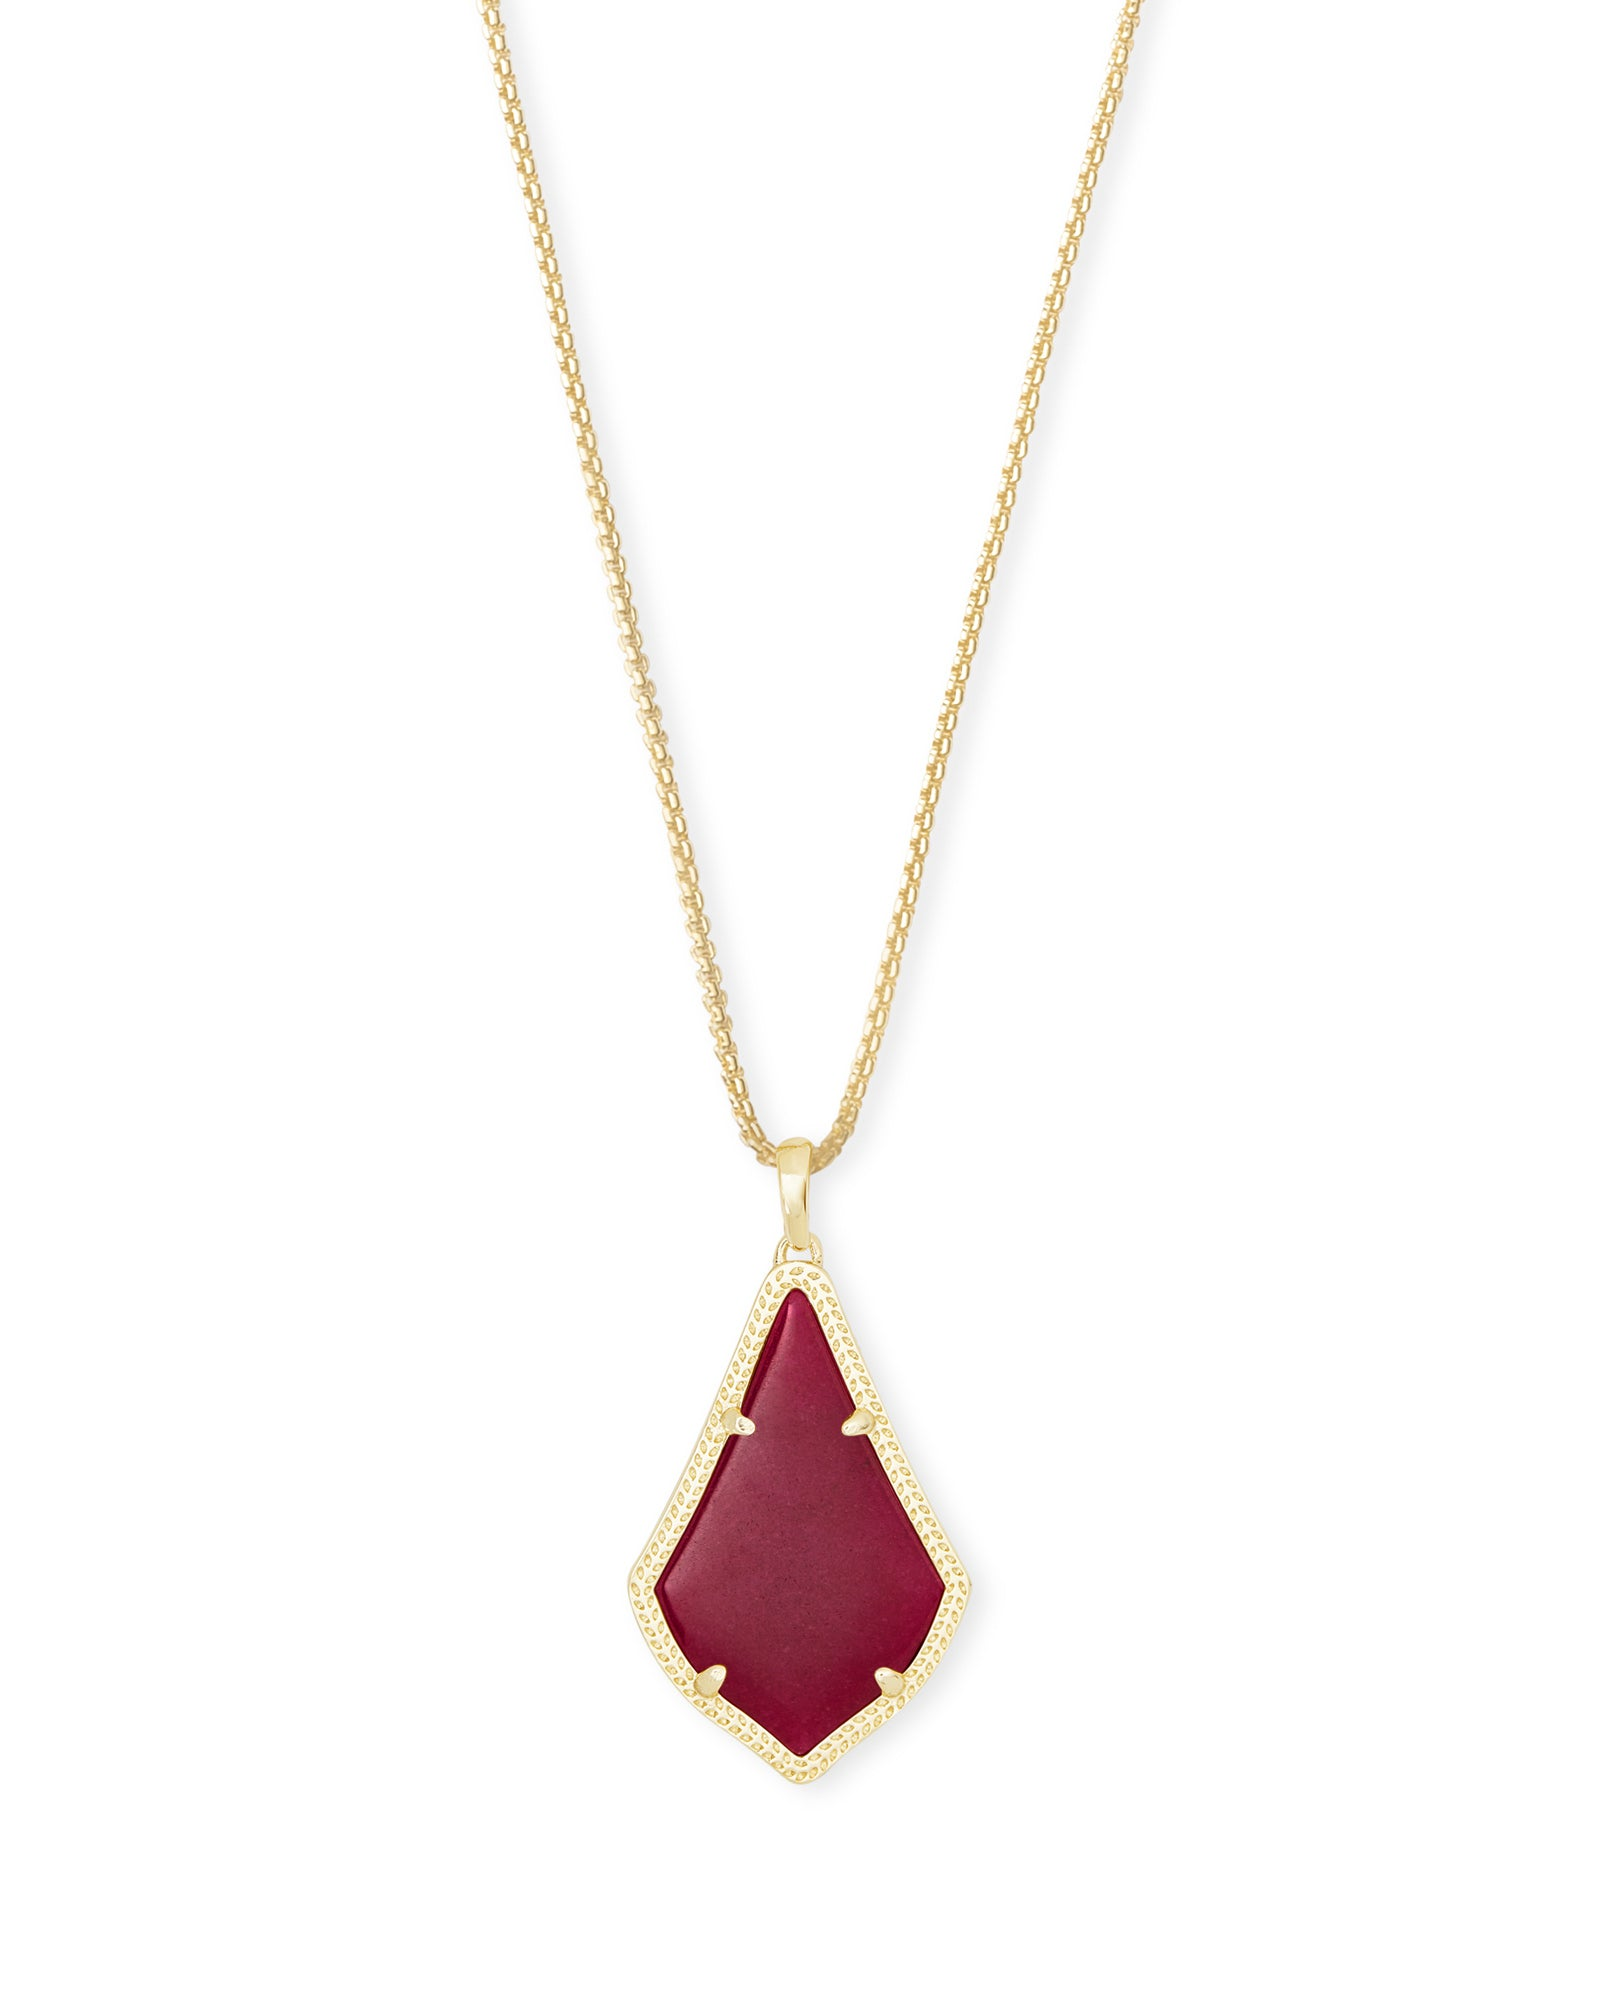 ALEX PENDANT NECKLACE GOLD MAROON JADE